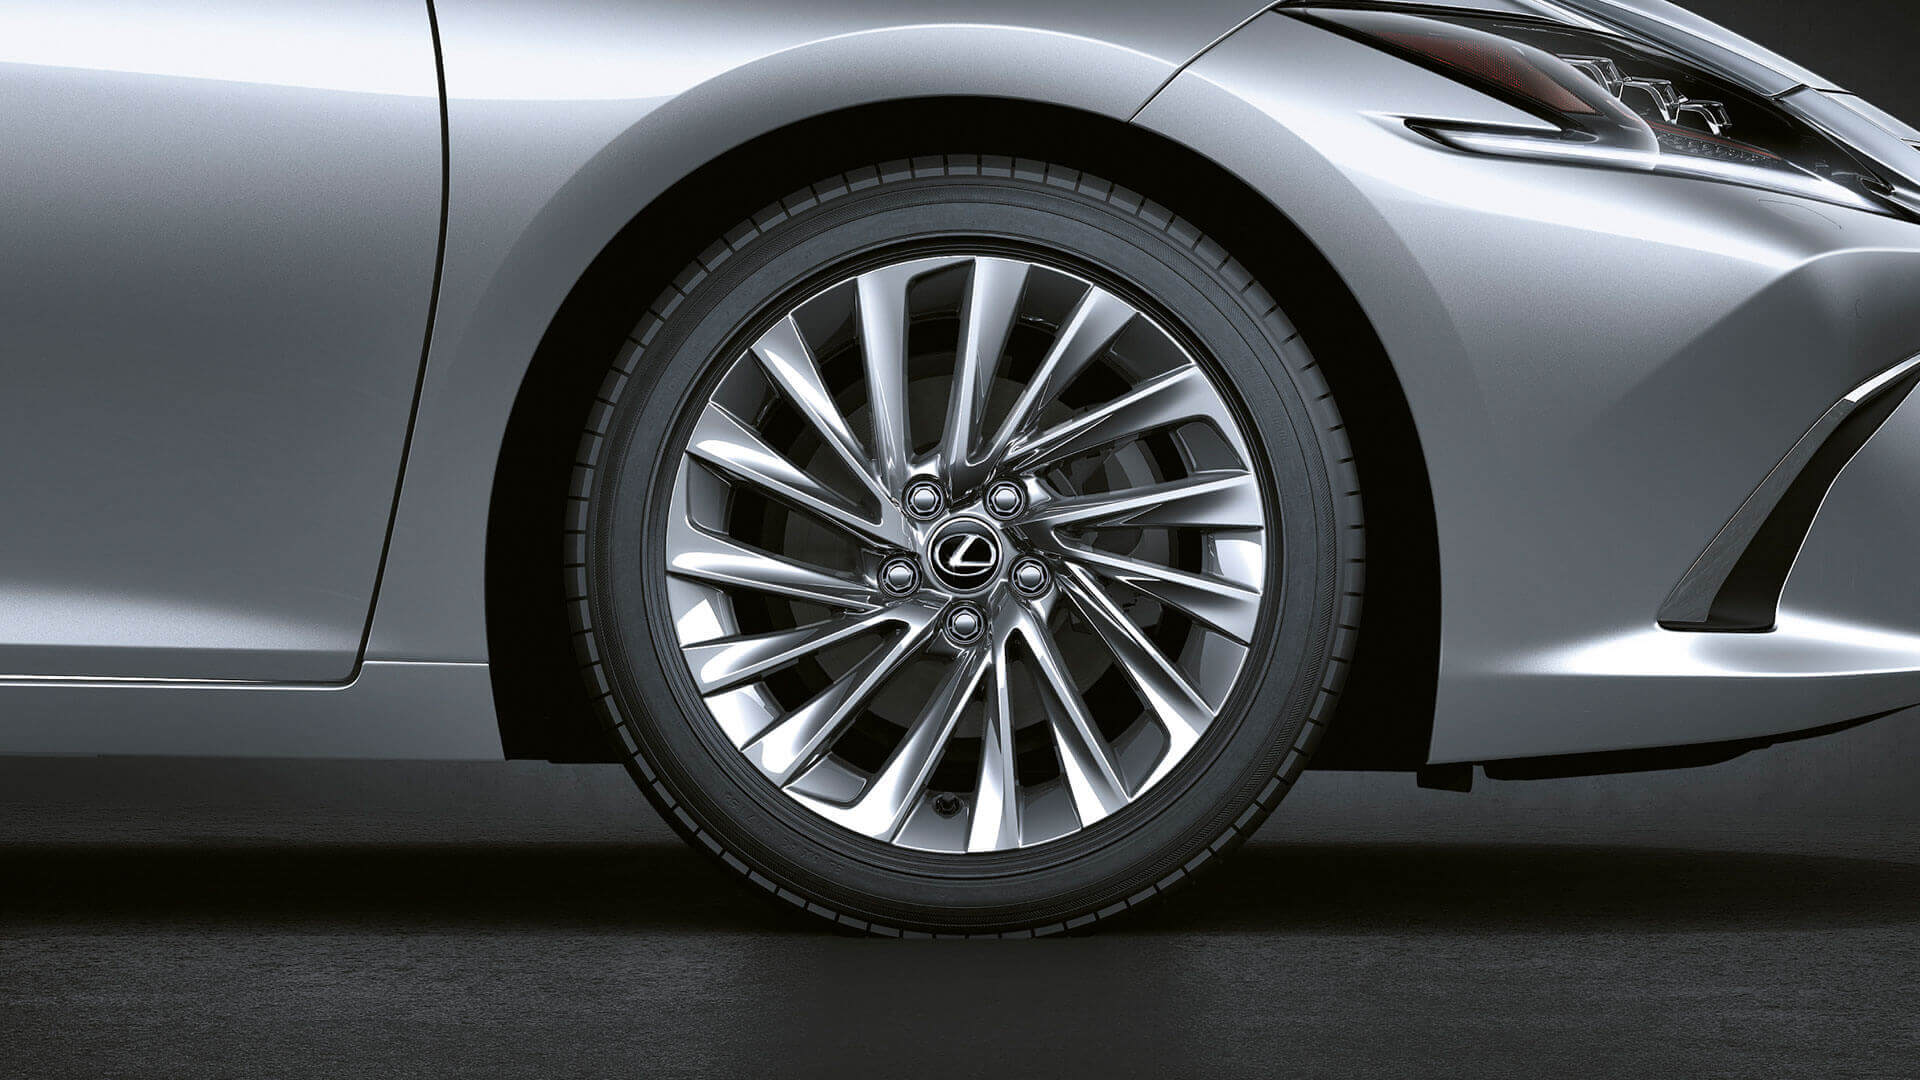 2019 lexus es hybrid experience feature noise reducing wheels